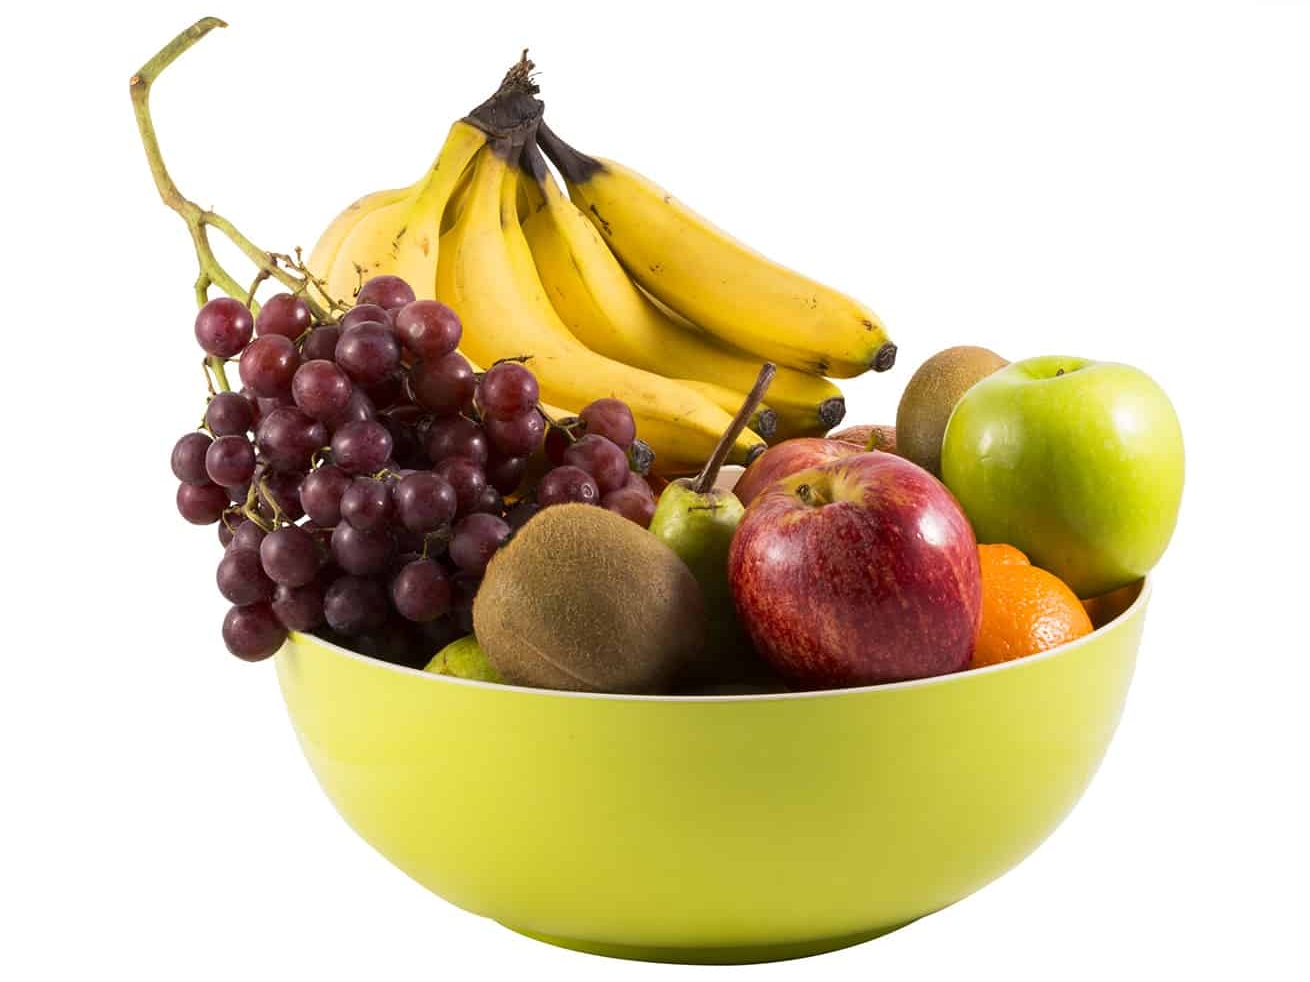 green fruit bowl filled with ripe fruit